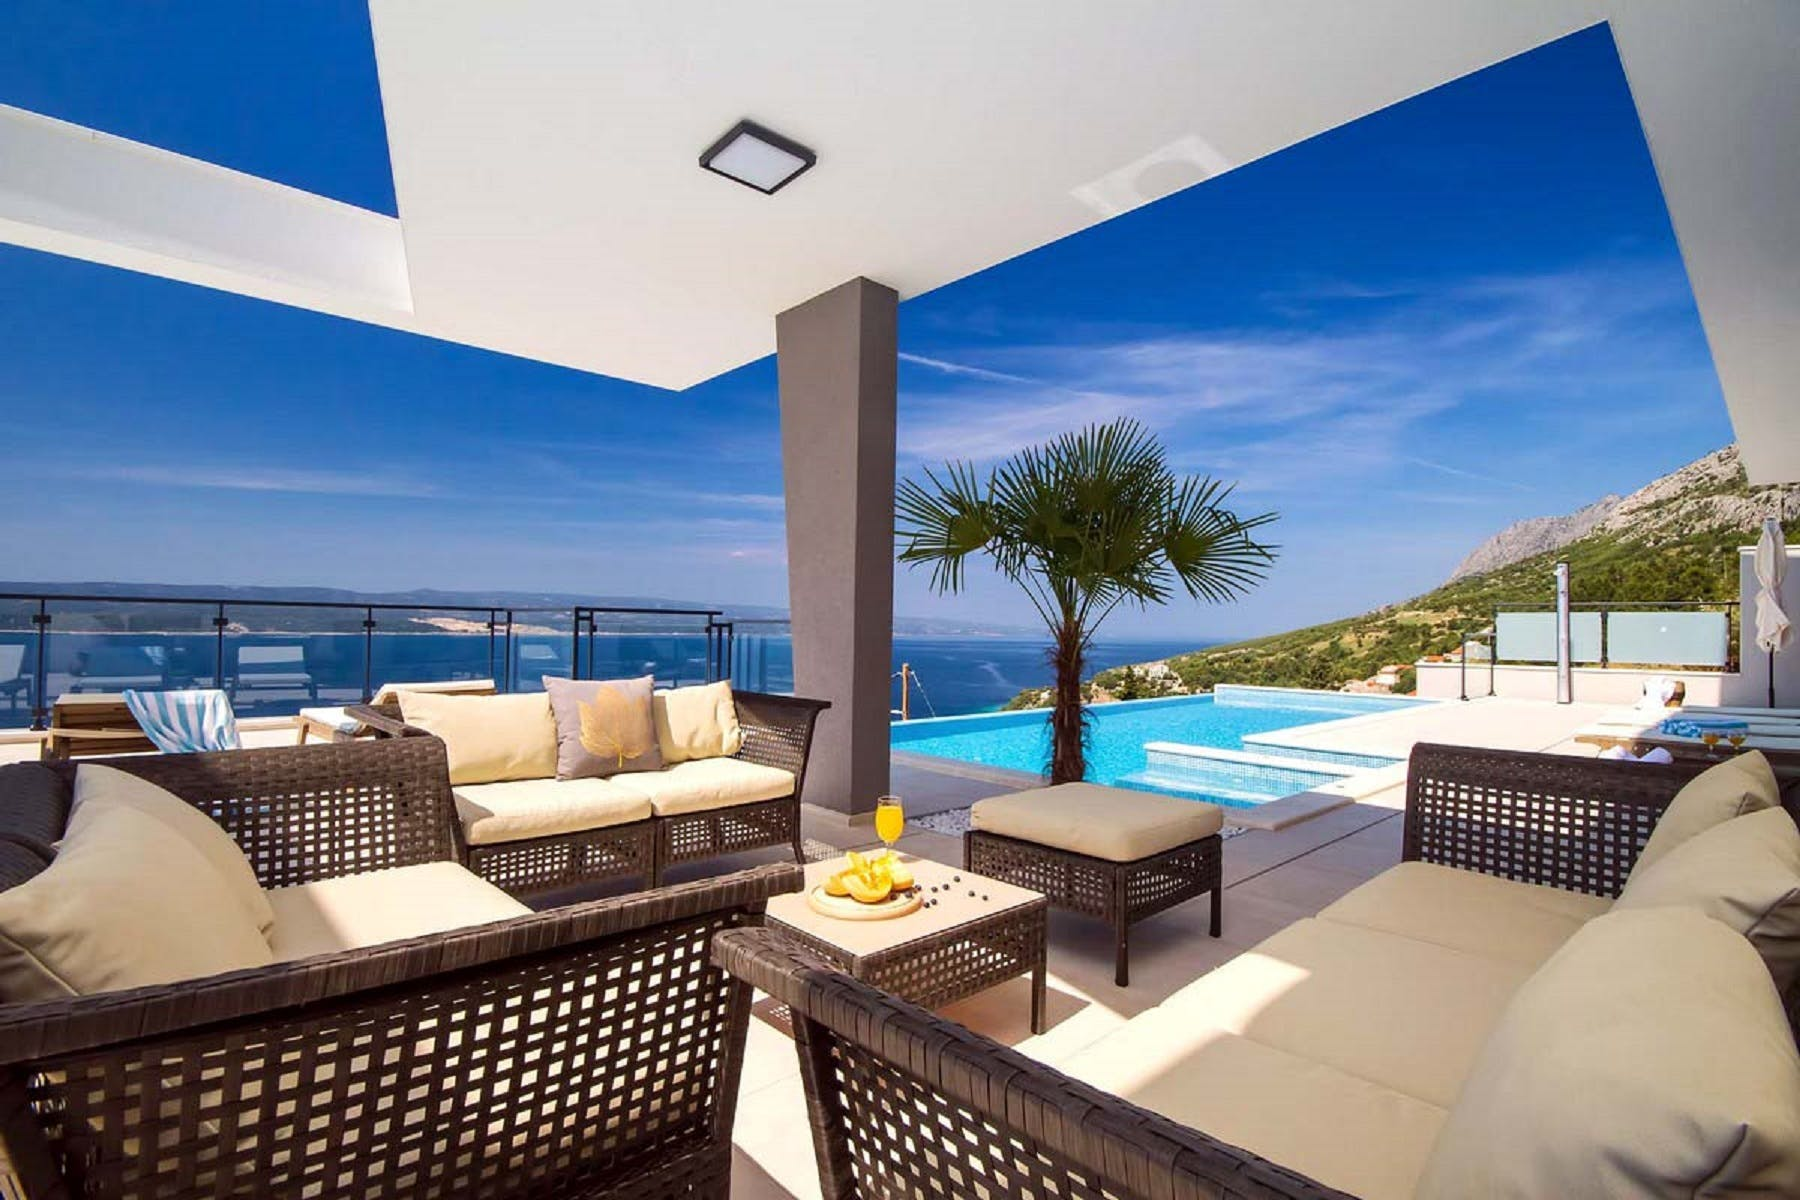 Cozy sunbathing and lounge area by the pool